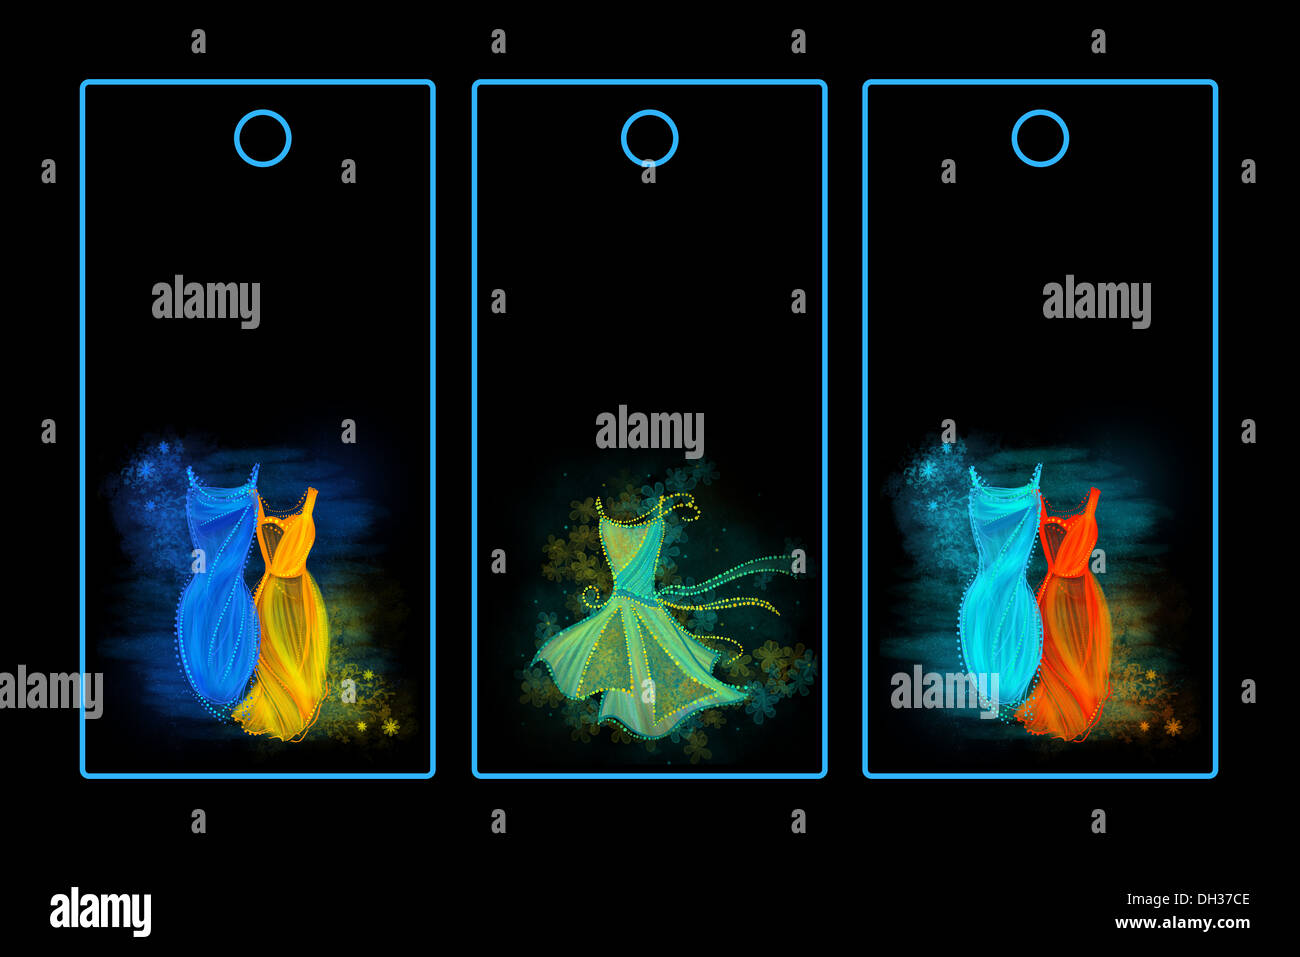 Tags for fashionable clothes. Black background, bright colors. - Stock Image